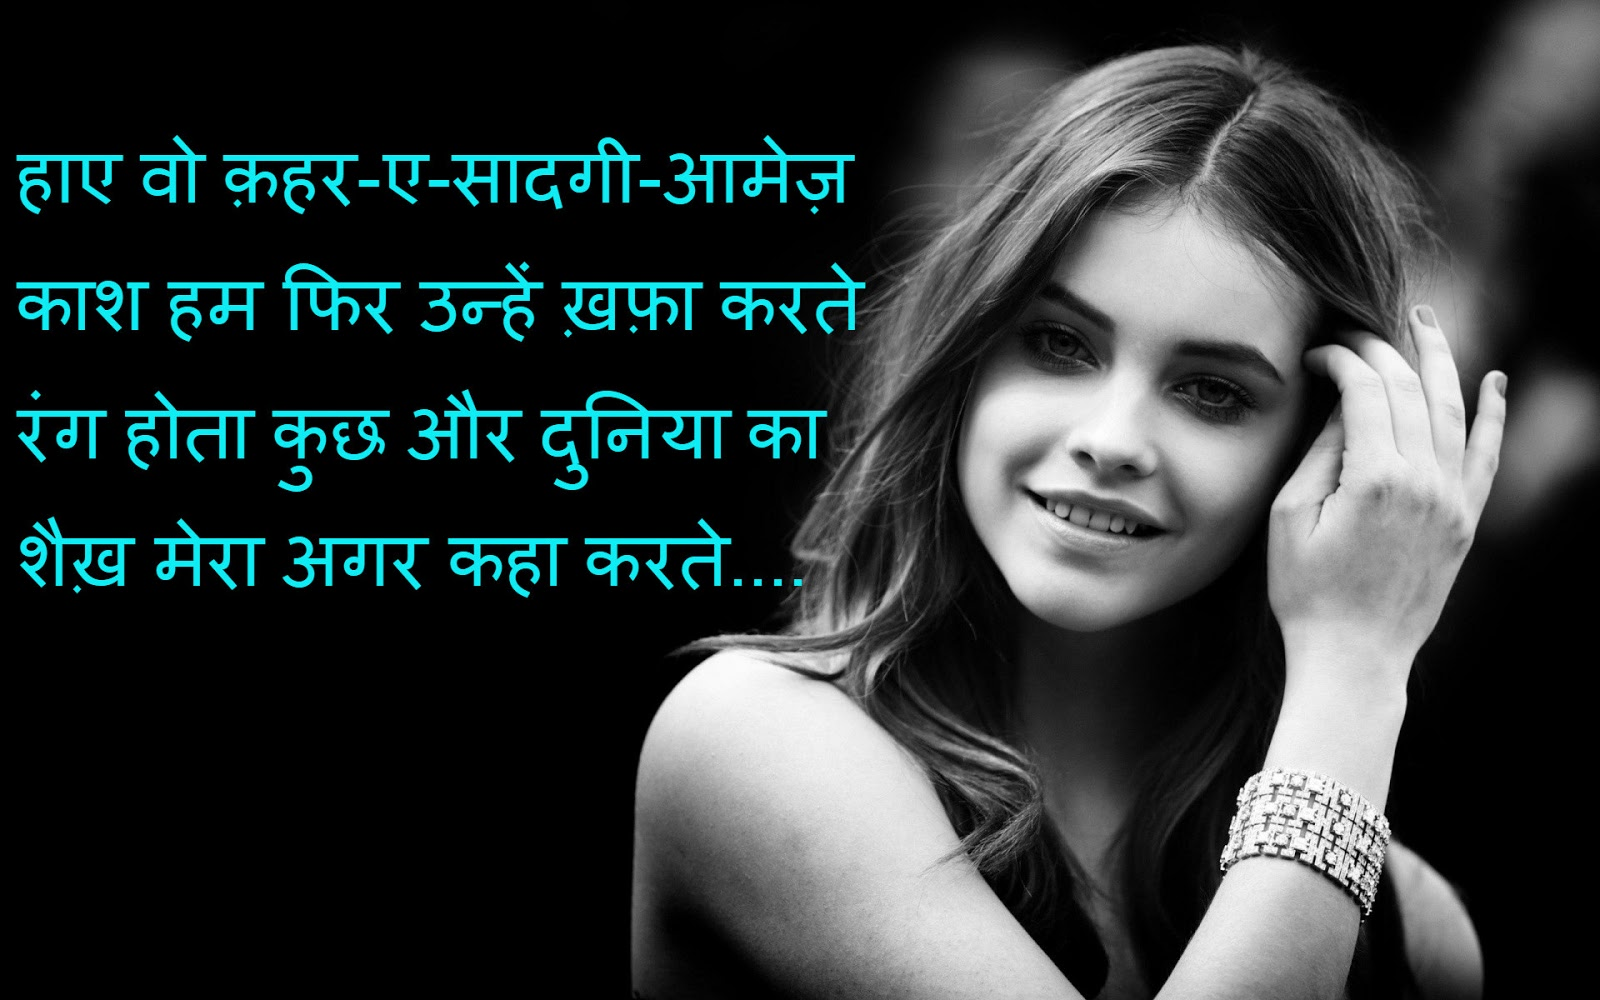 Wallpaper download love sad - Gujarati Funny Images Shayari Love Shayari Best Dard Shayari Love Bewafai Shayari